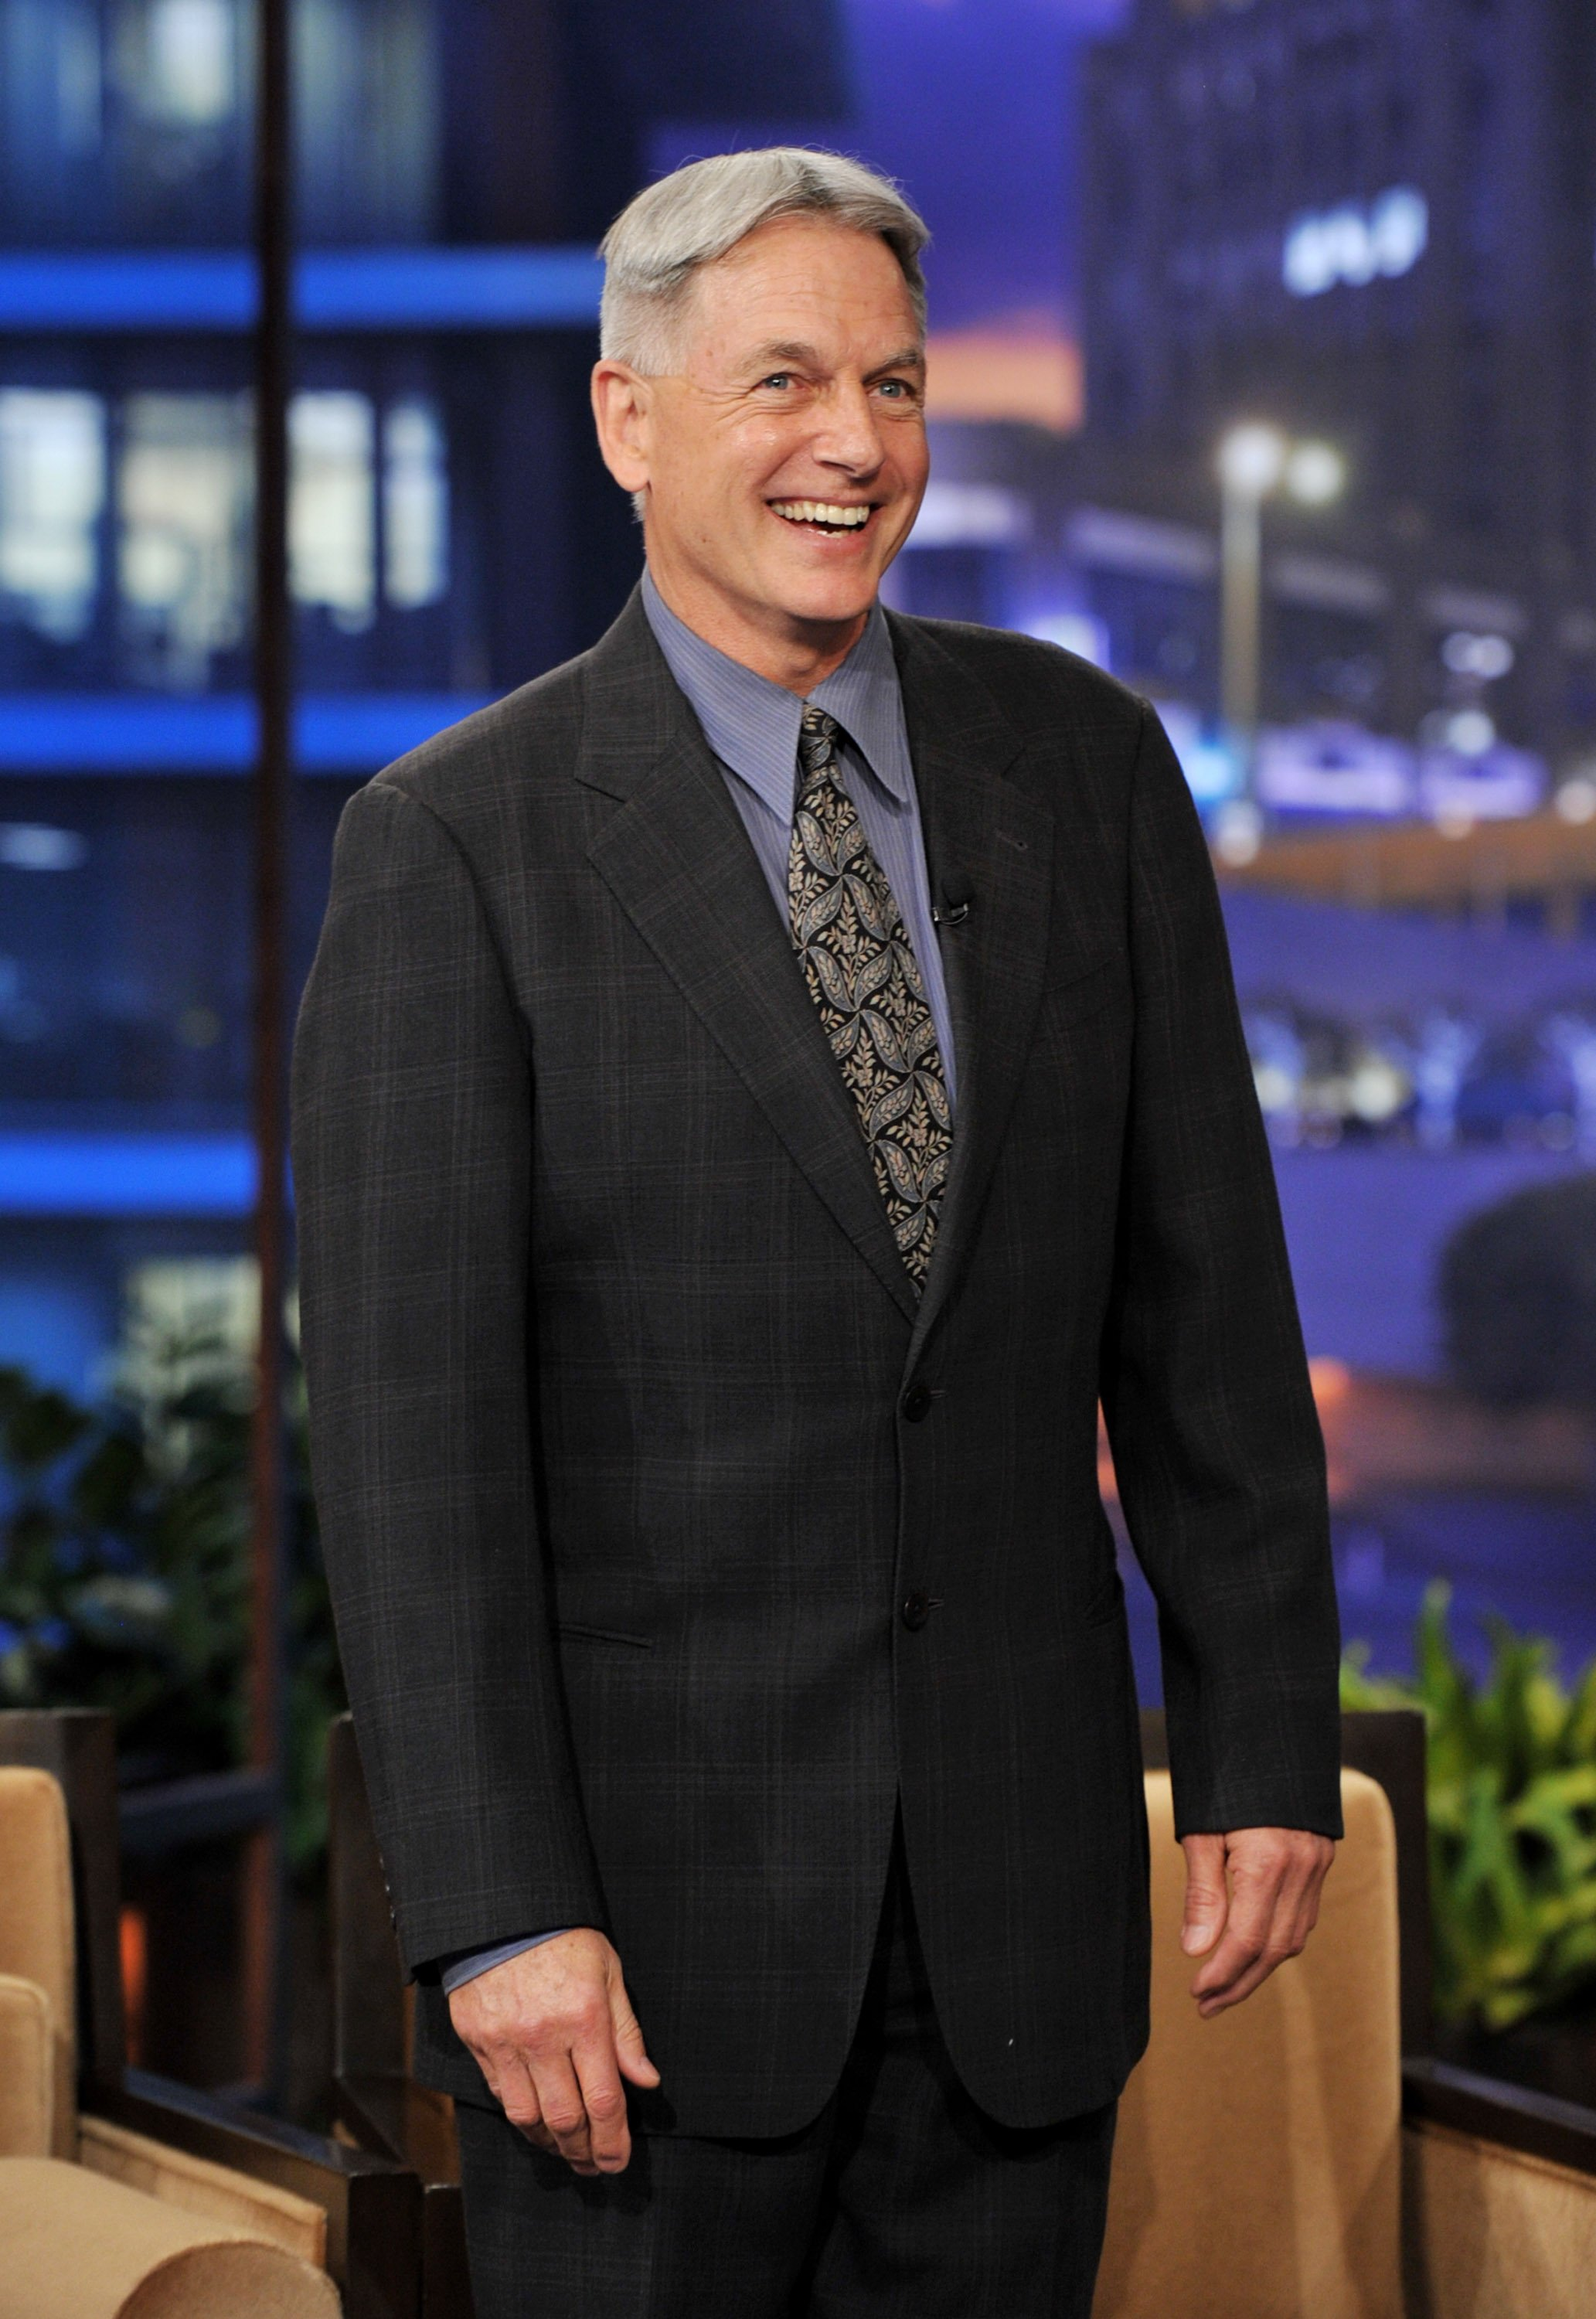 """Mark Harmon appears on """"The Tonight Show With Jay Leno"""" in Burbank, California on January 31, 2012   Photo: Getty Images"""